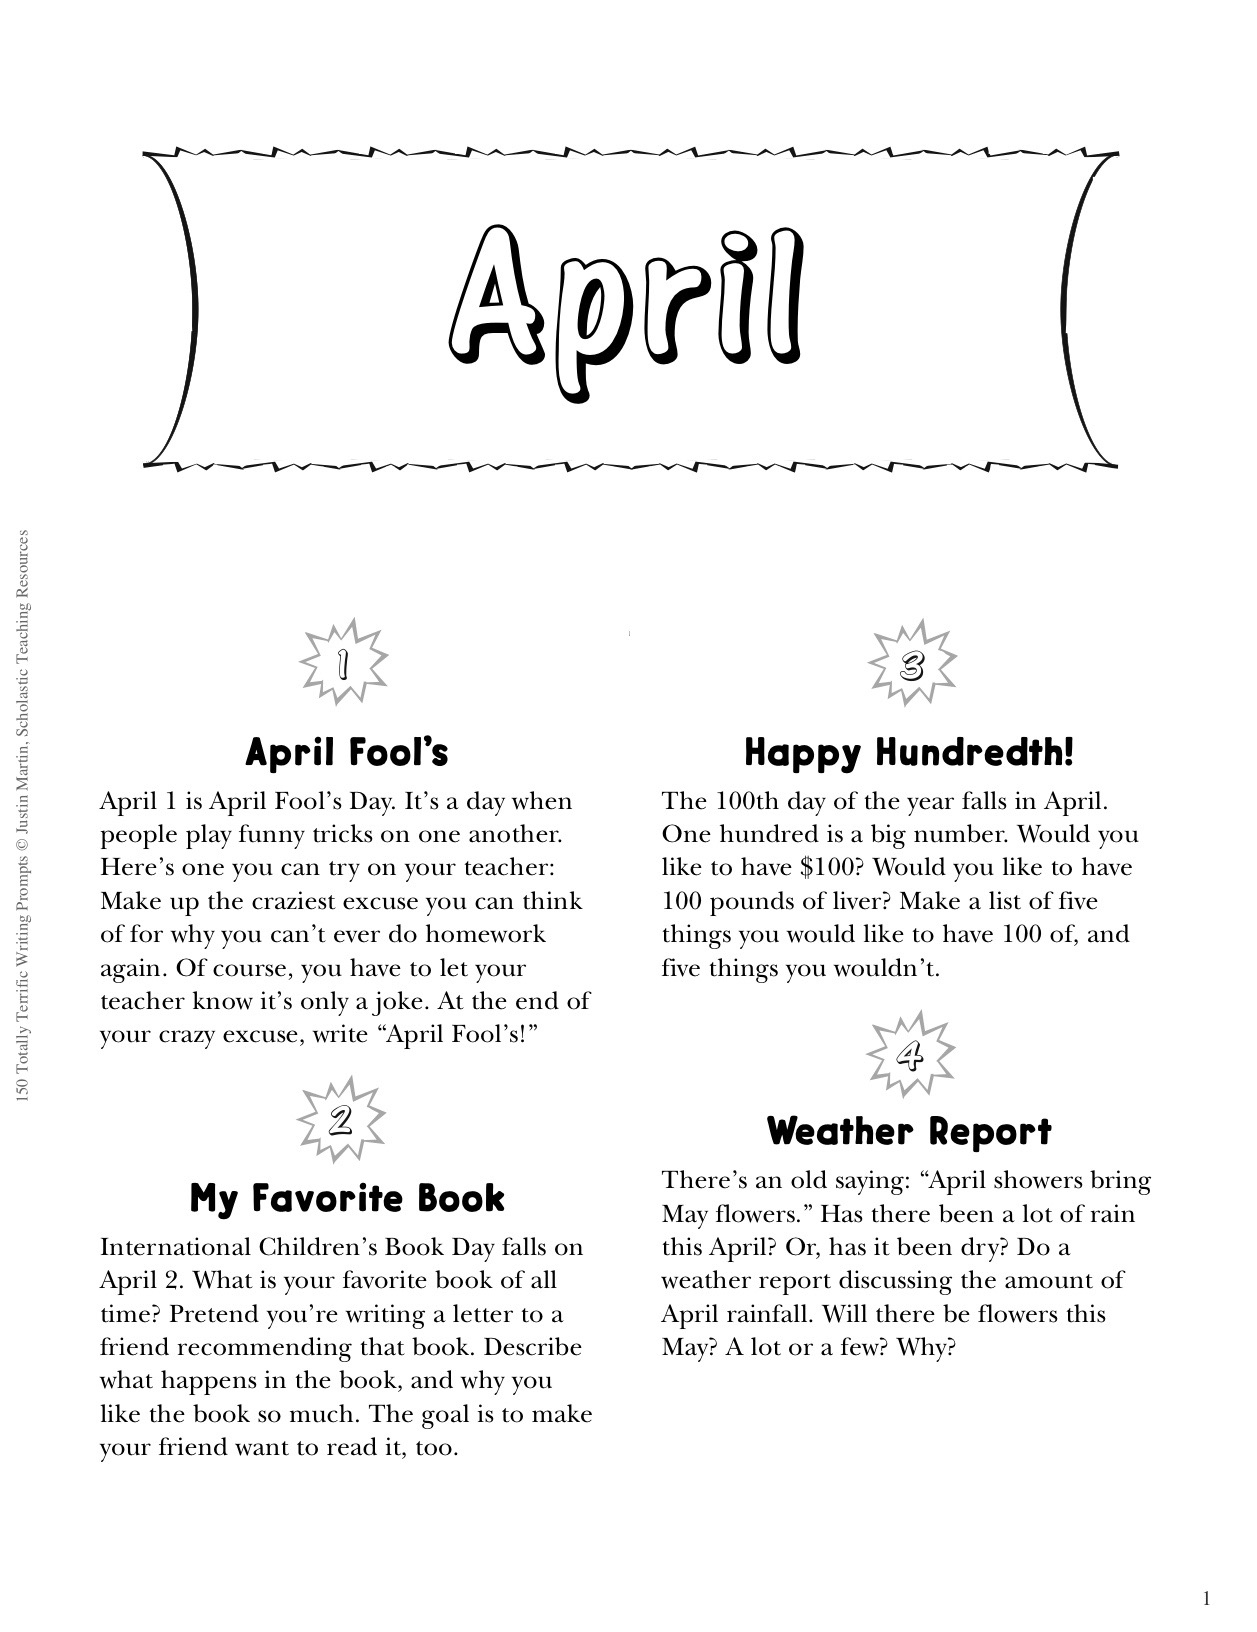 Free Printable Prompts To Spring Writing To Life | Scholastic - Get Out Of Homework Free Pass Printable